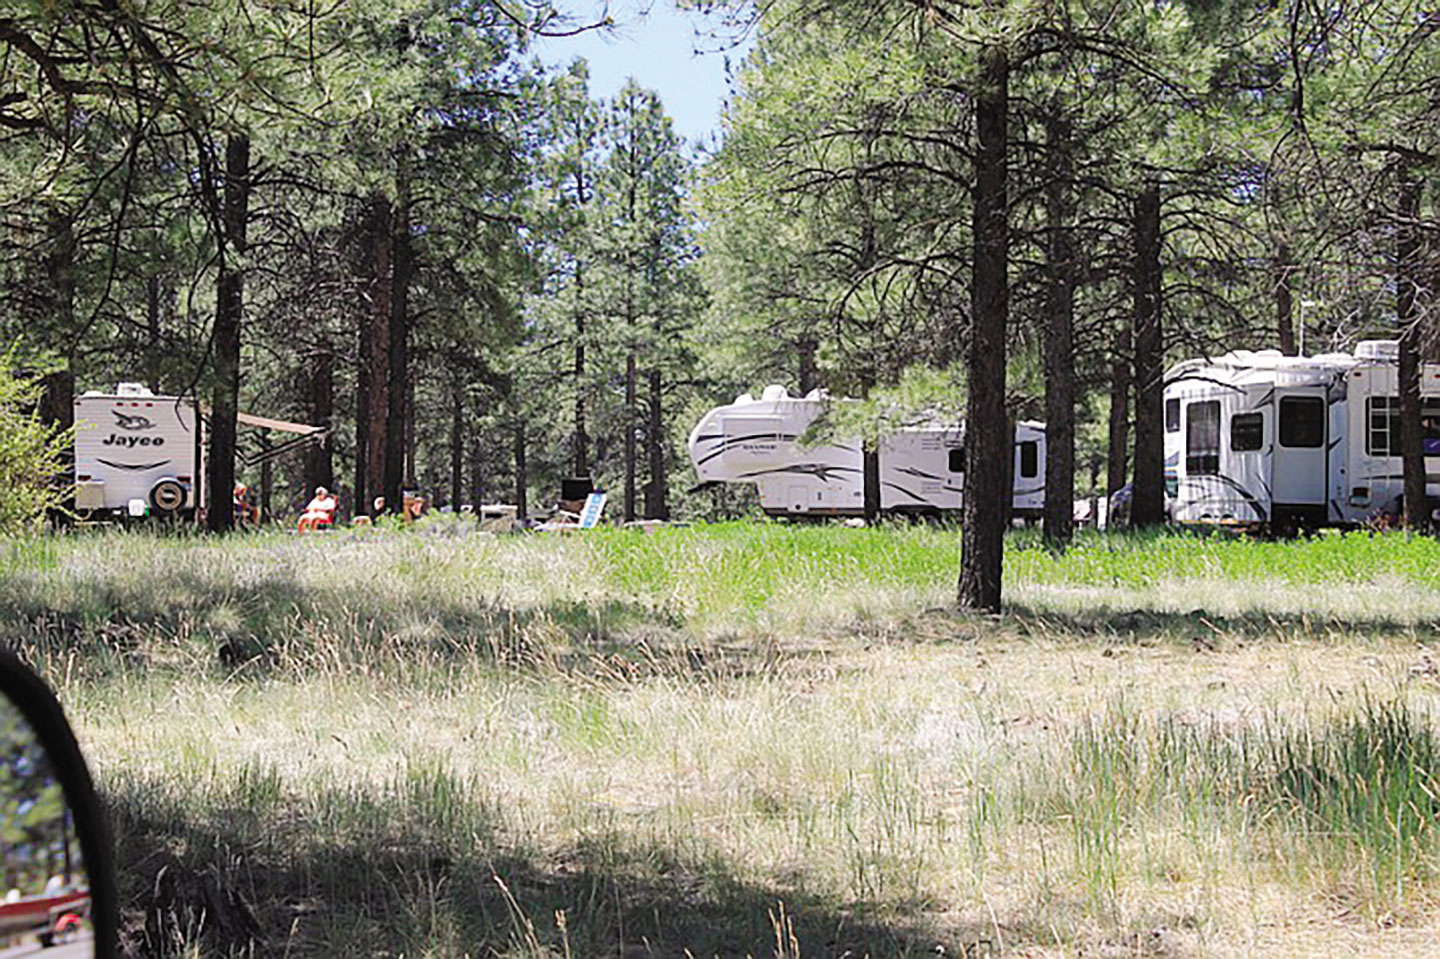 Northern Arizona Campgrounds Report Unusually High